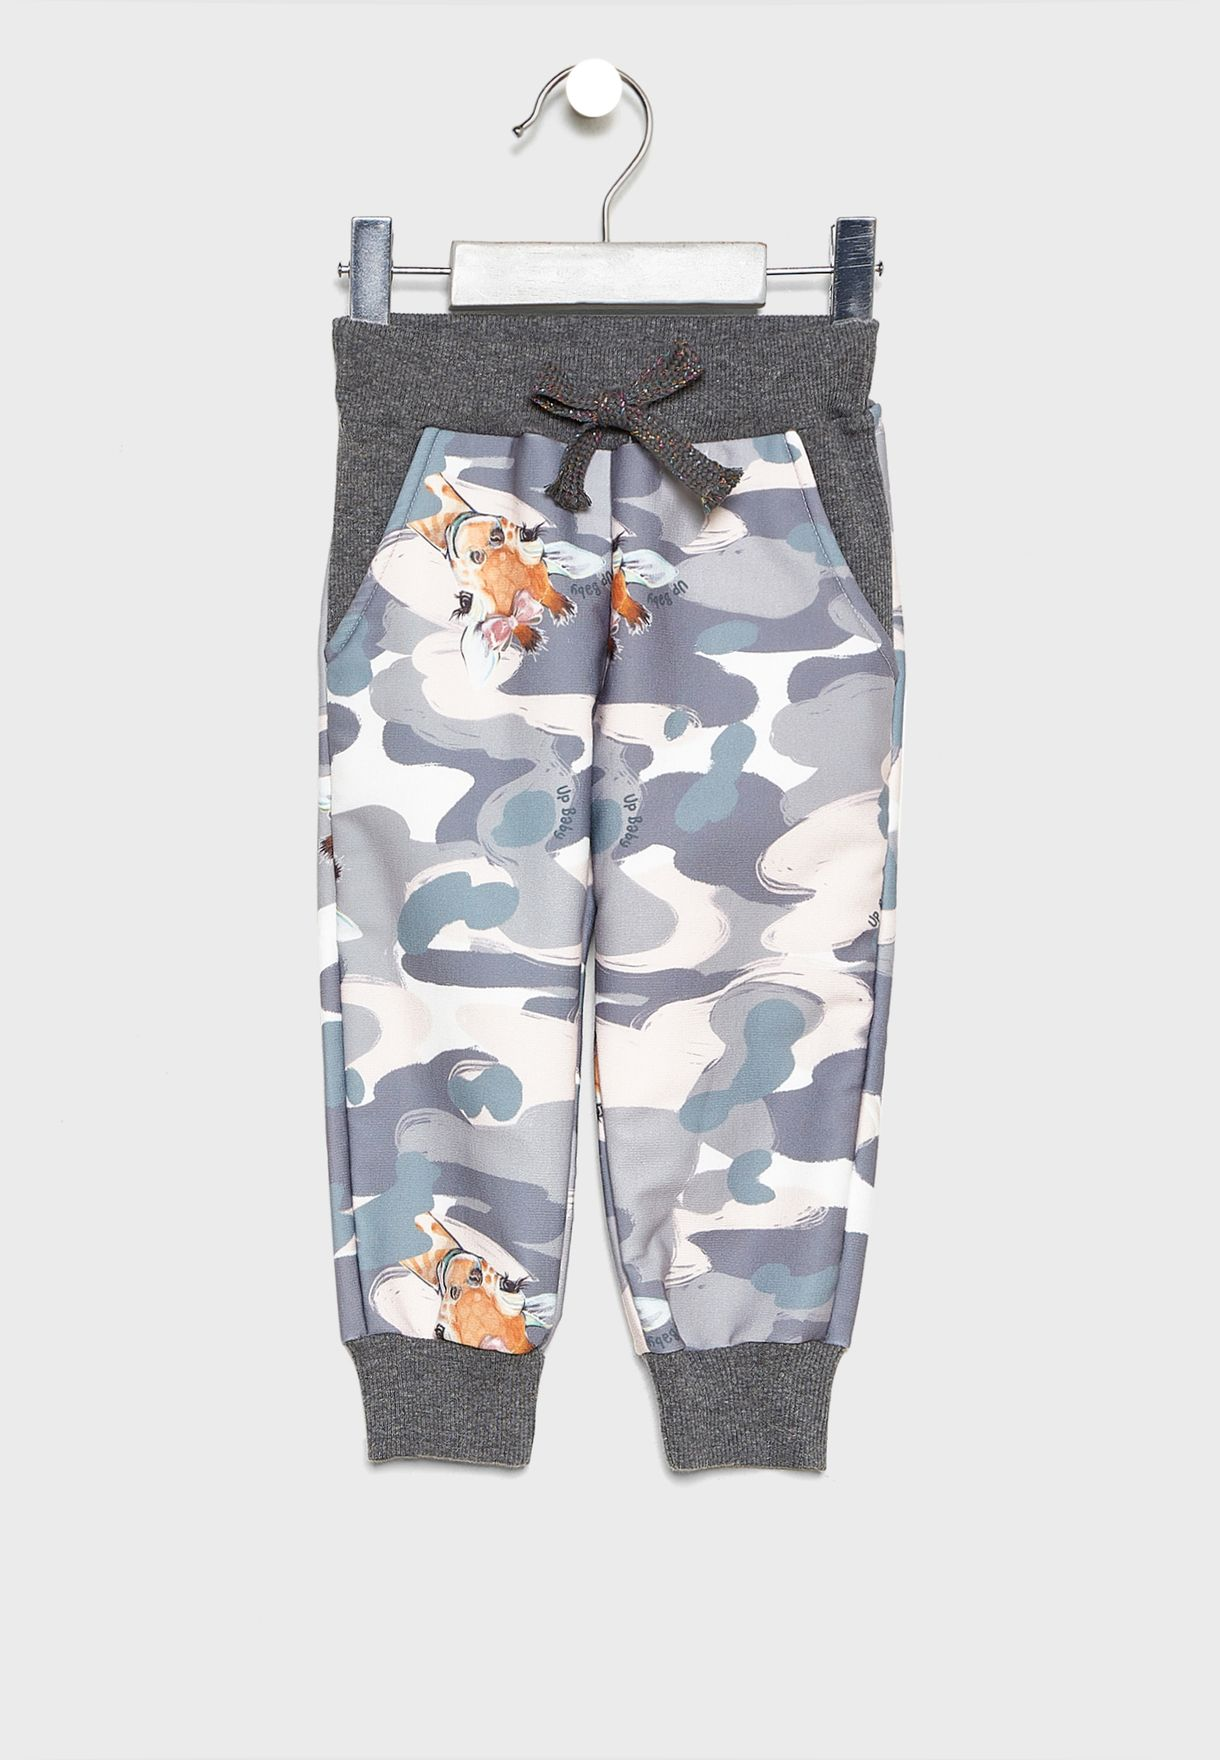 Kids Printed Sweatshirt + Sweatpants Set